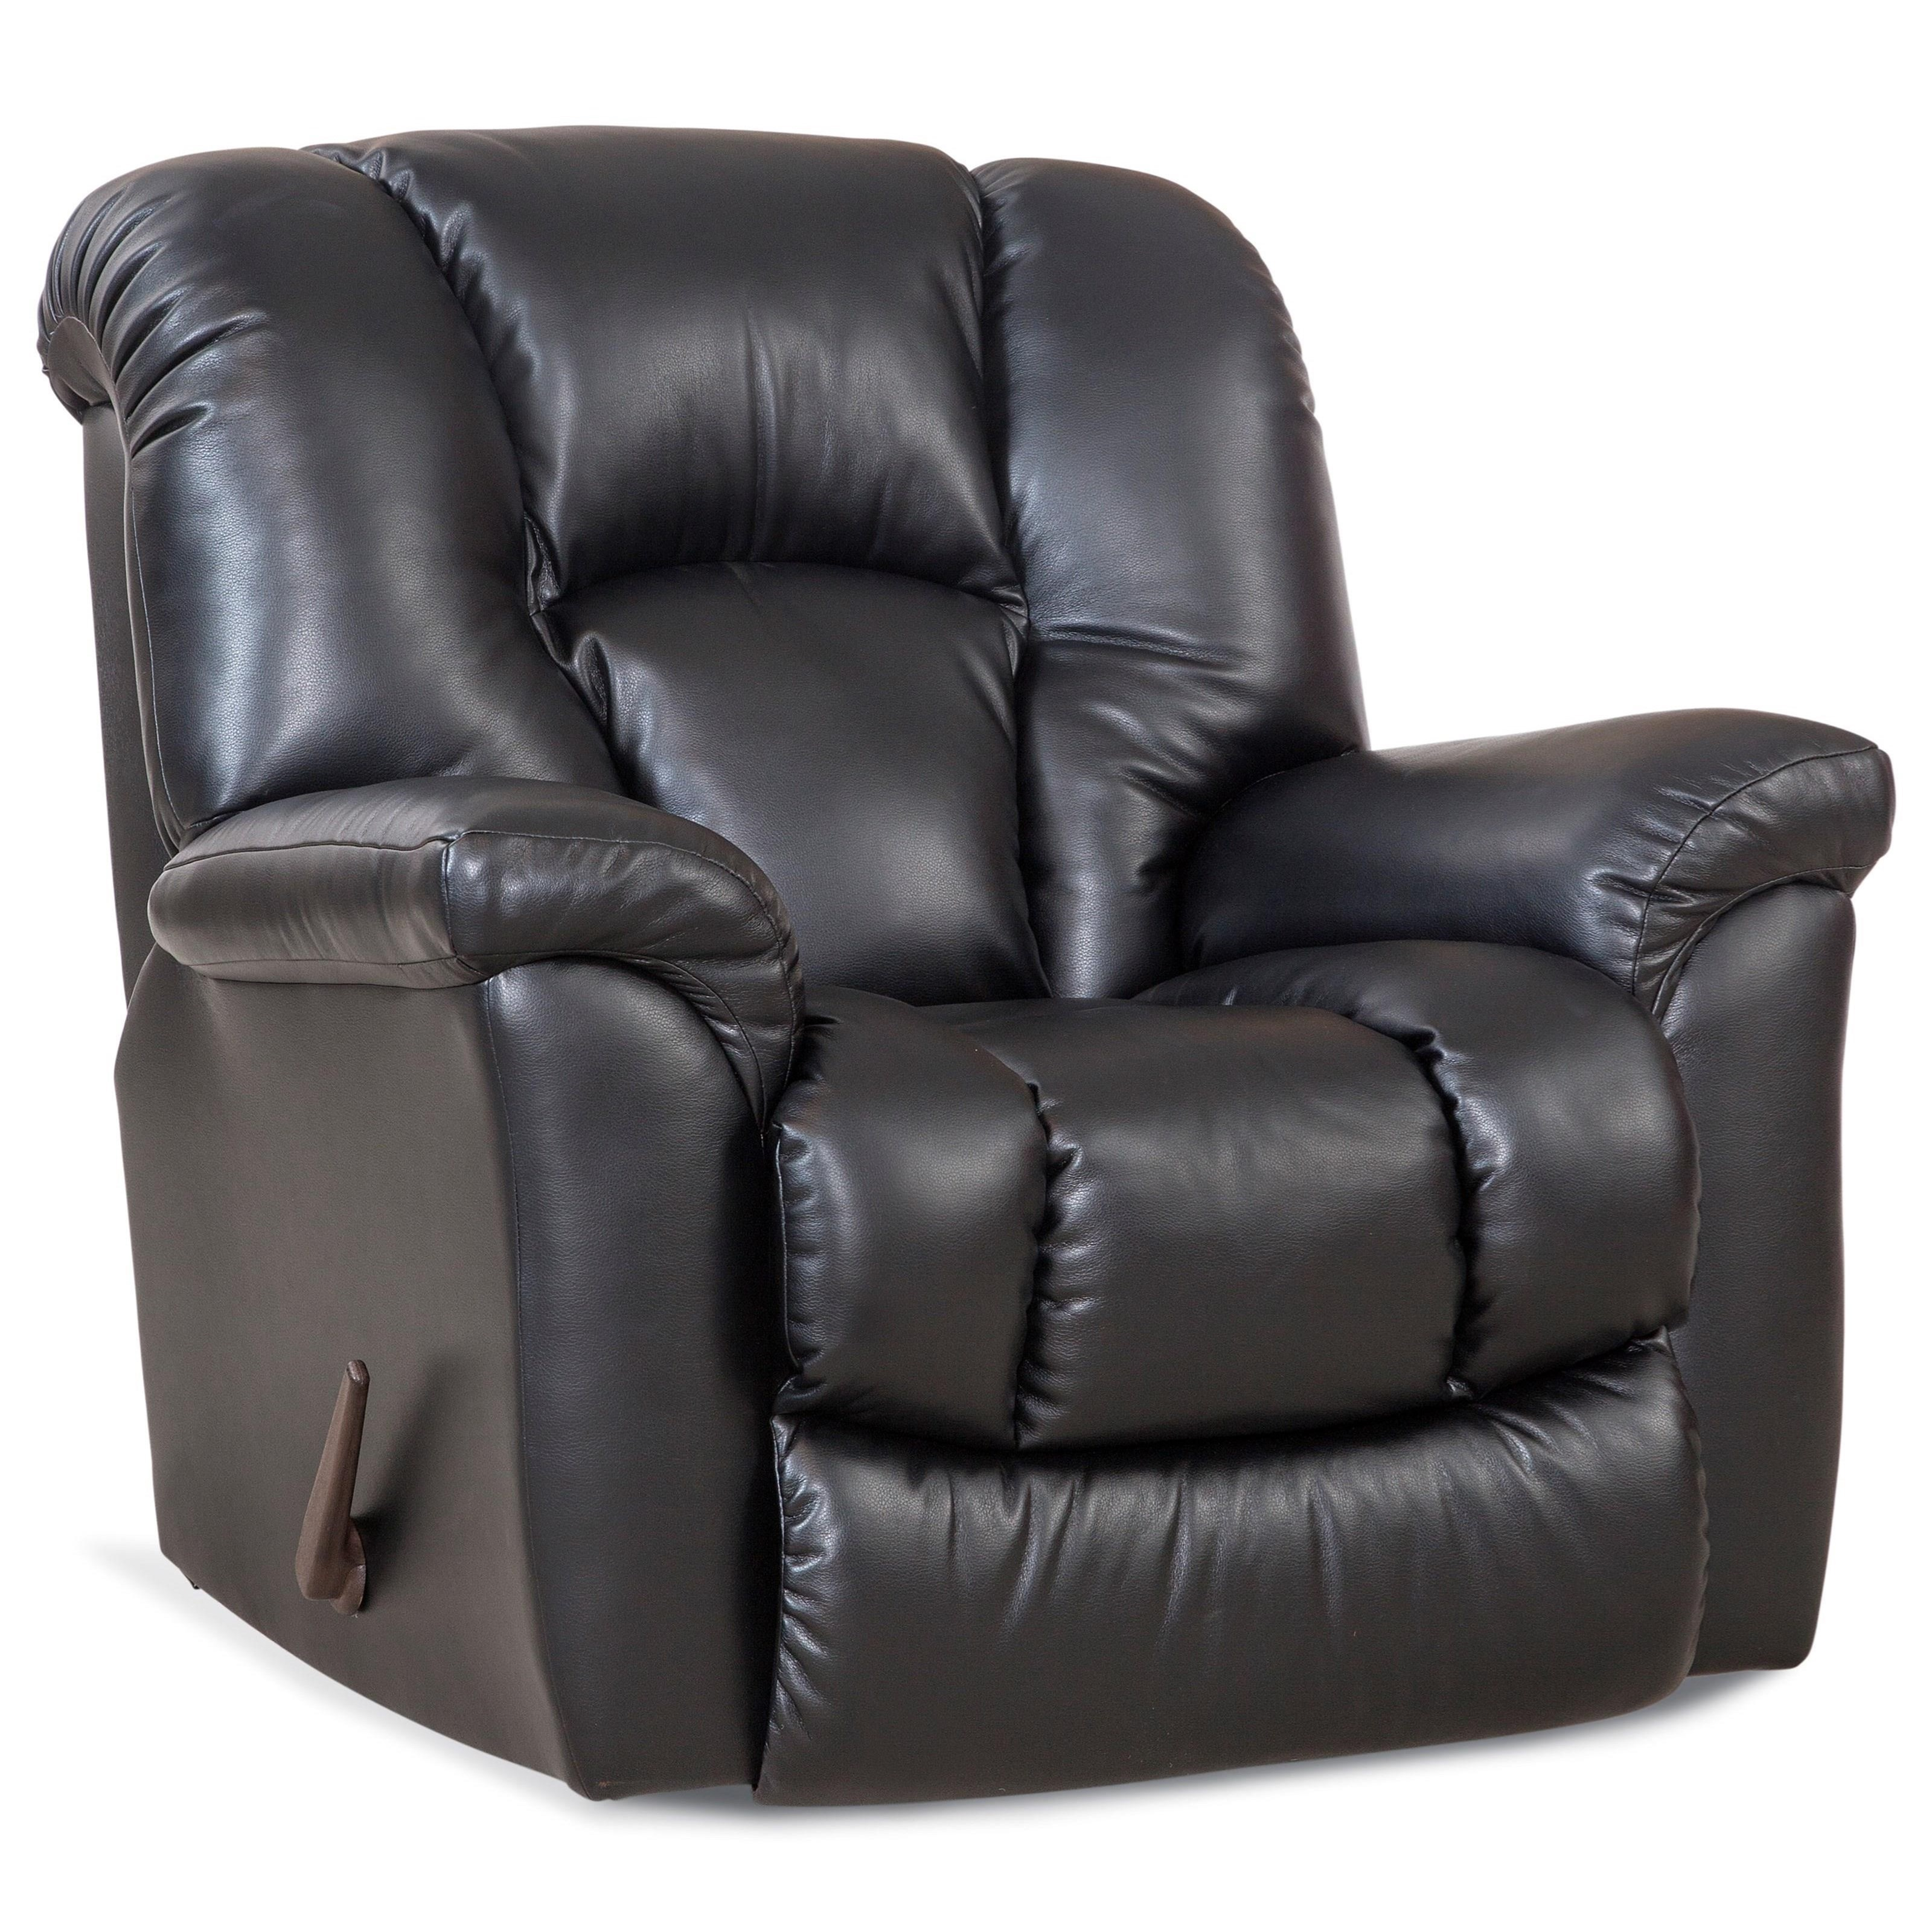 116 Rocker Recliner by HomeStretch at Coconis Furniture & Mattress 1st